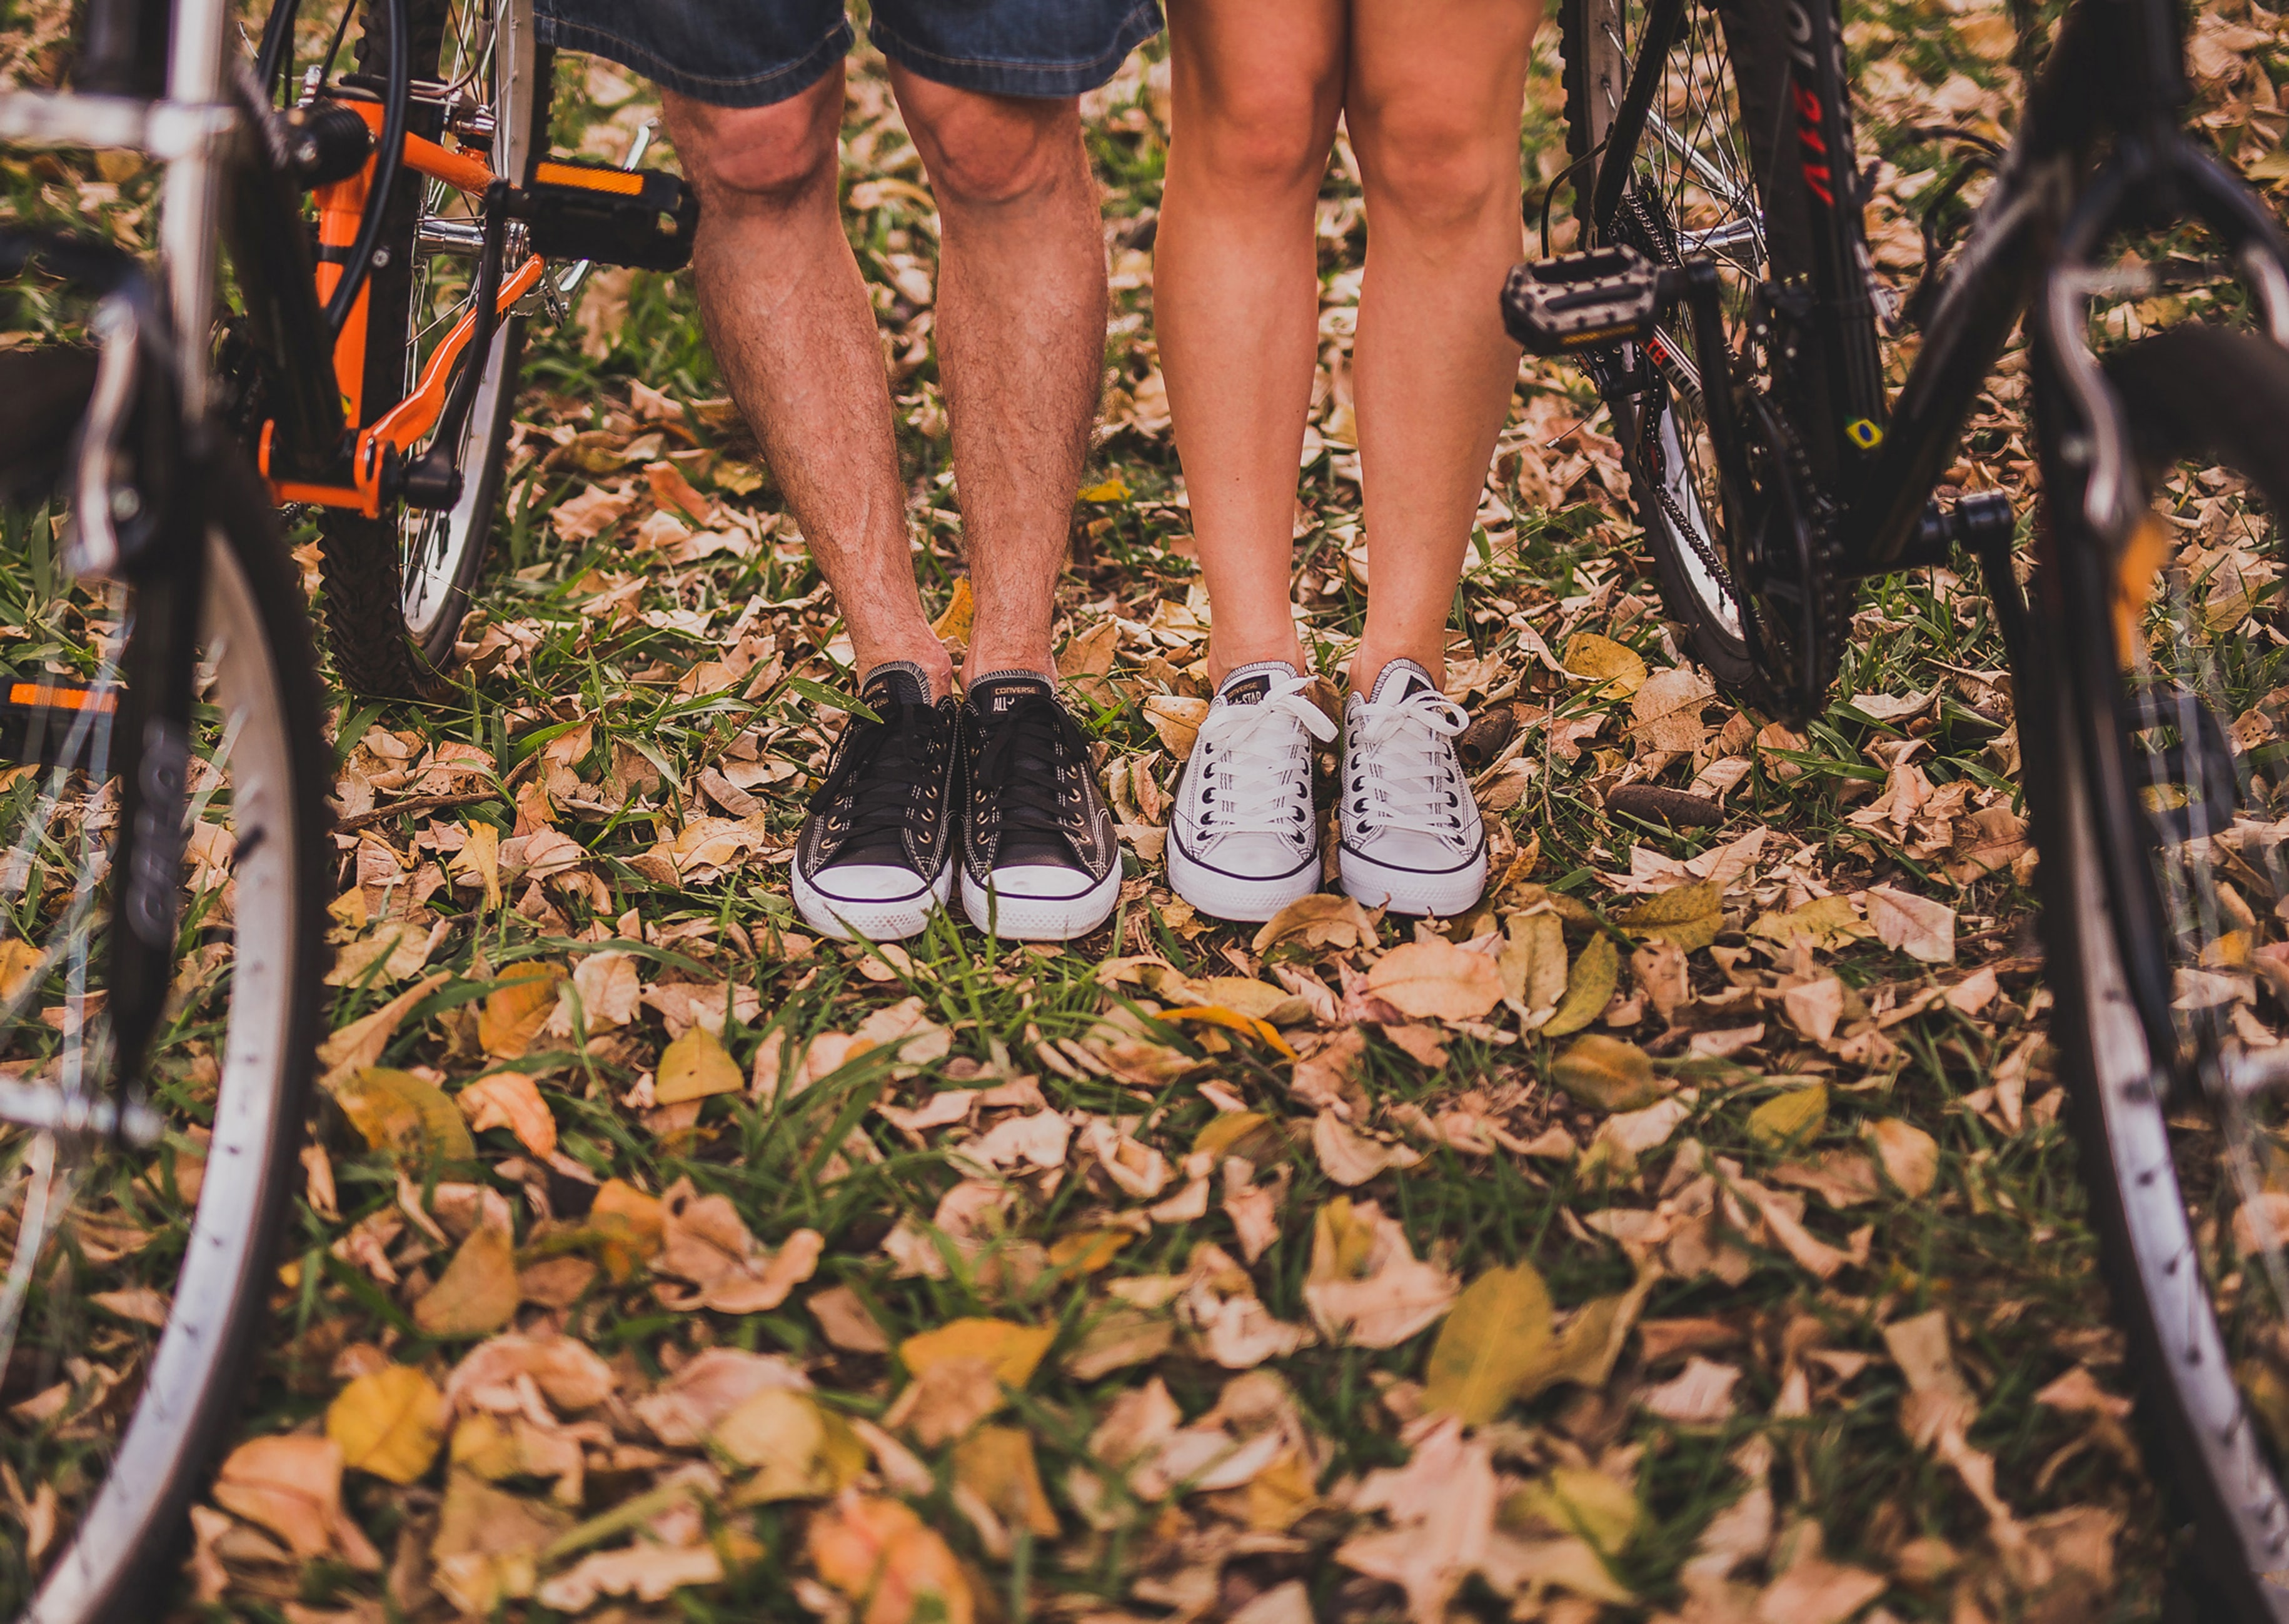 Close-up of man and woman's feet and knees together while pausing from a bike ride